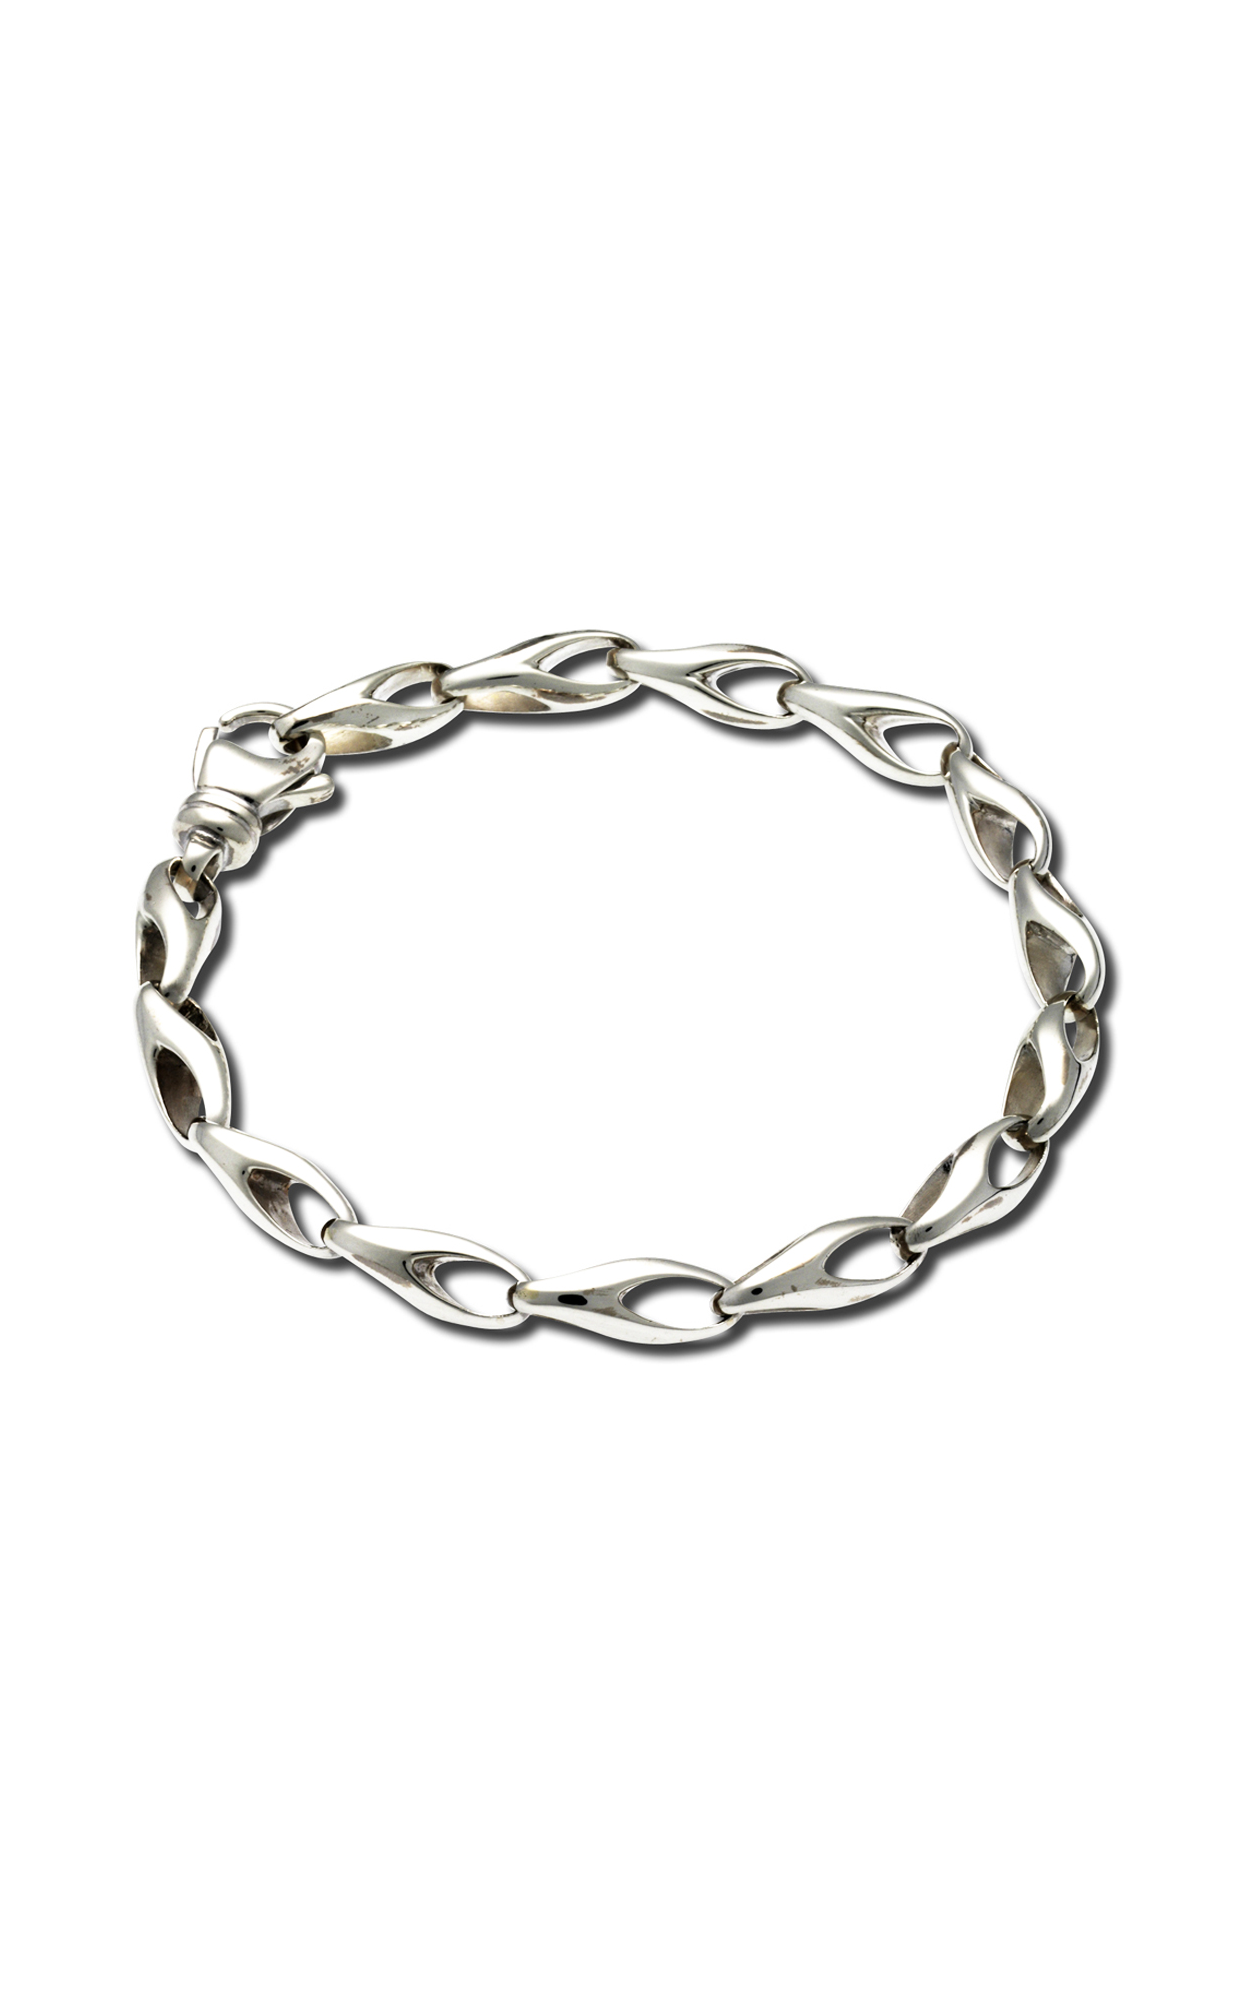 Zina Contemporary Bracelet A811 product image